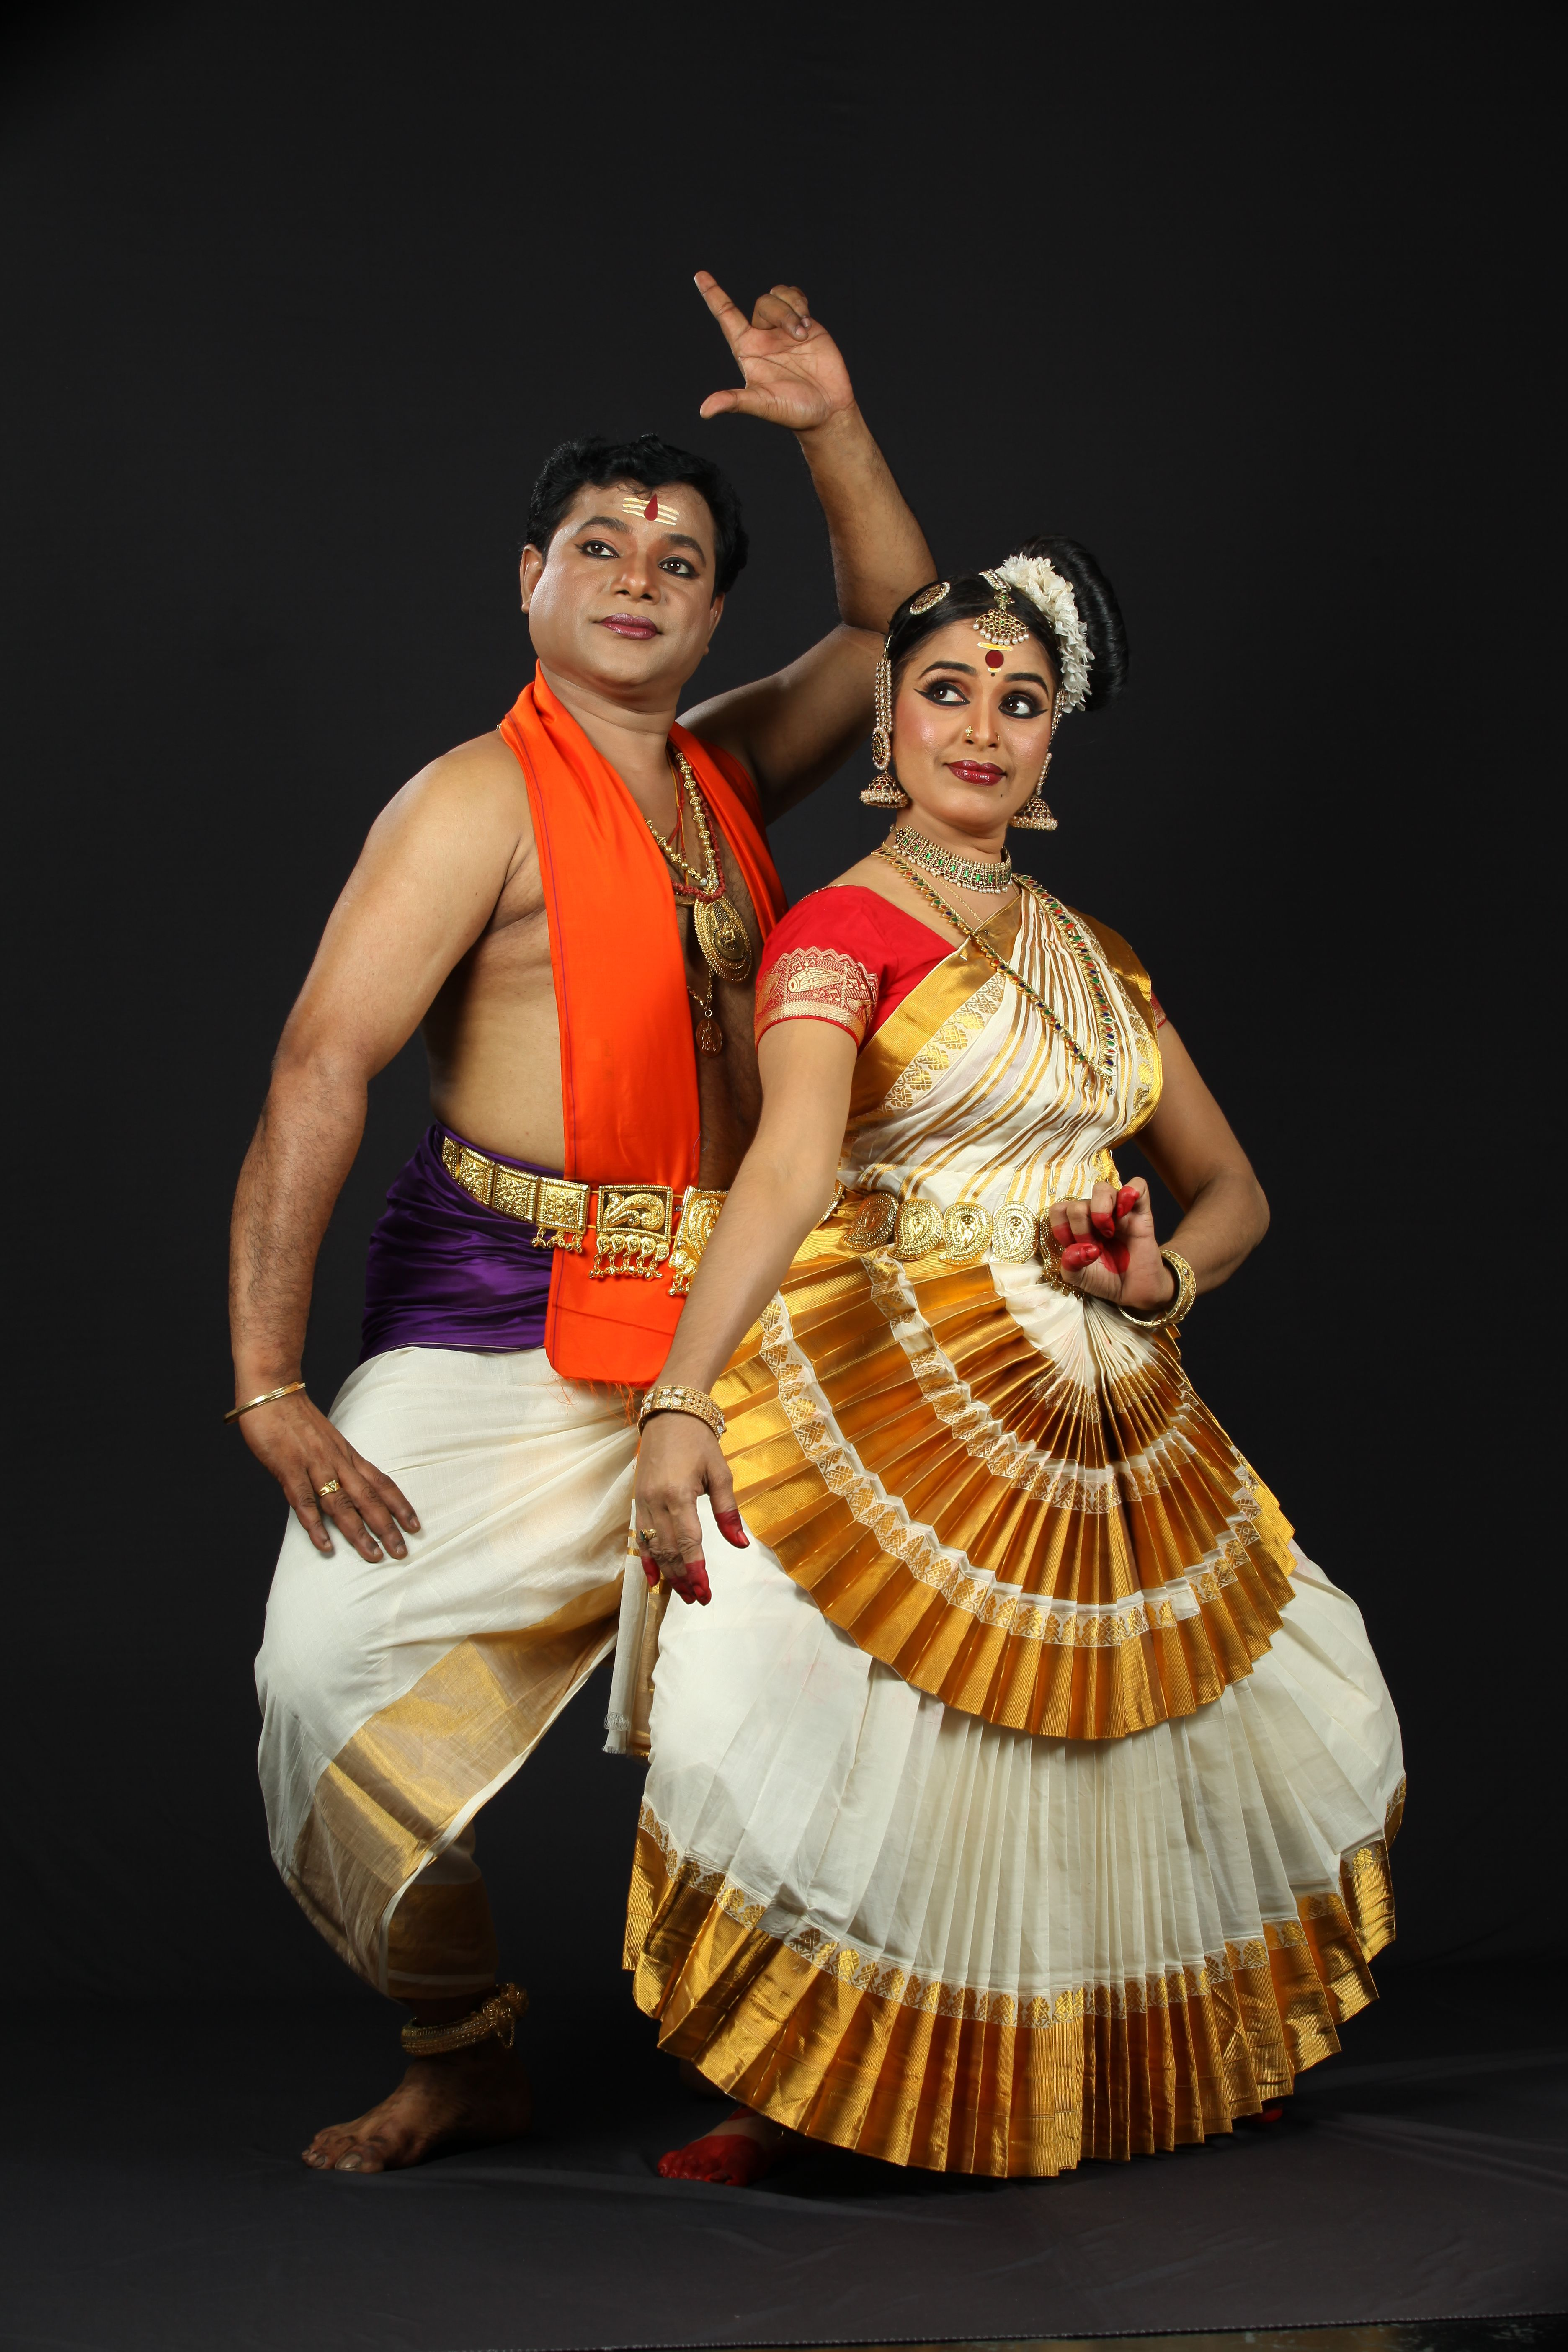 A competent performer, choreographer and teacher. Anand ...